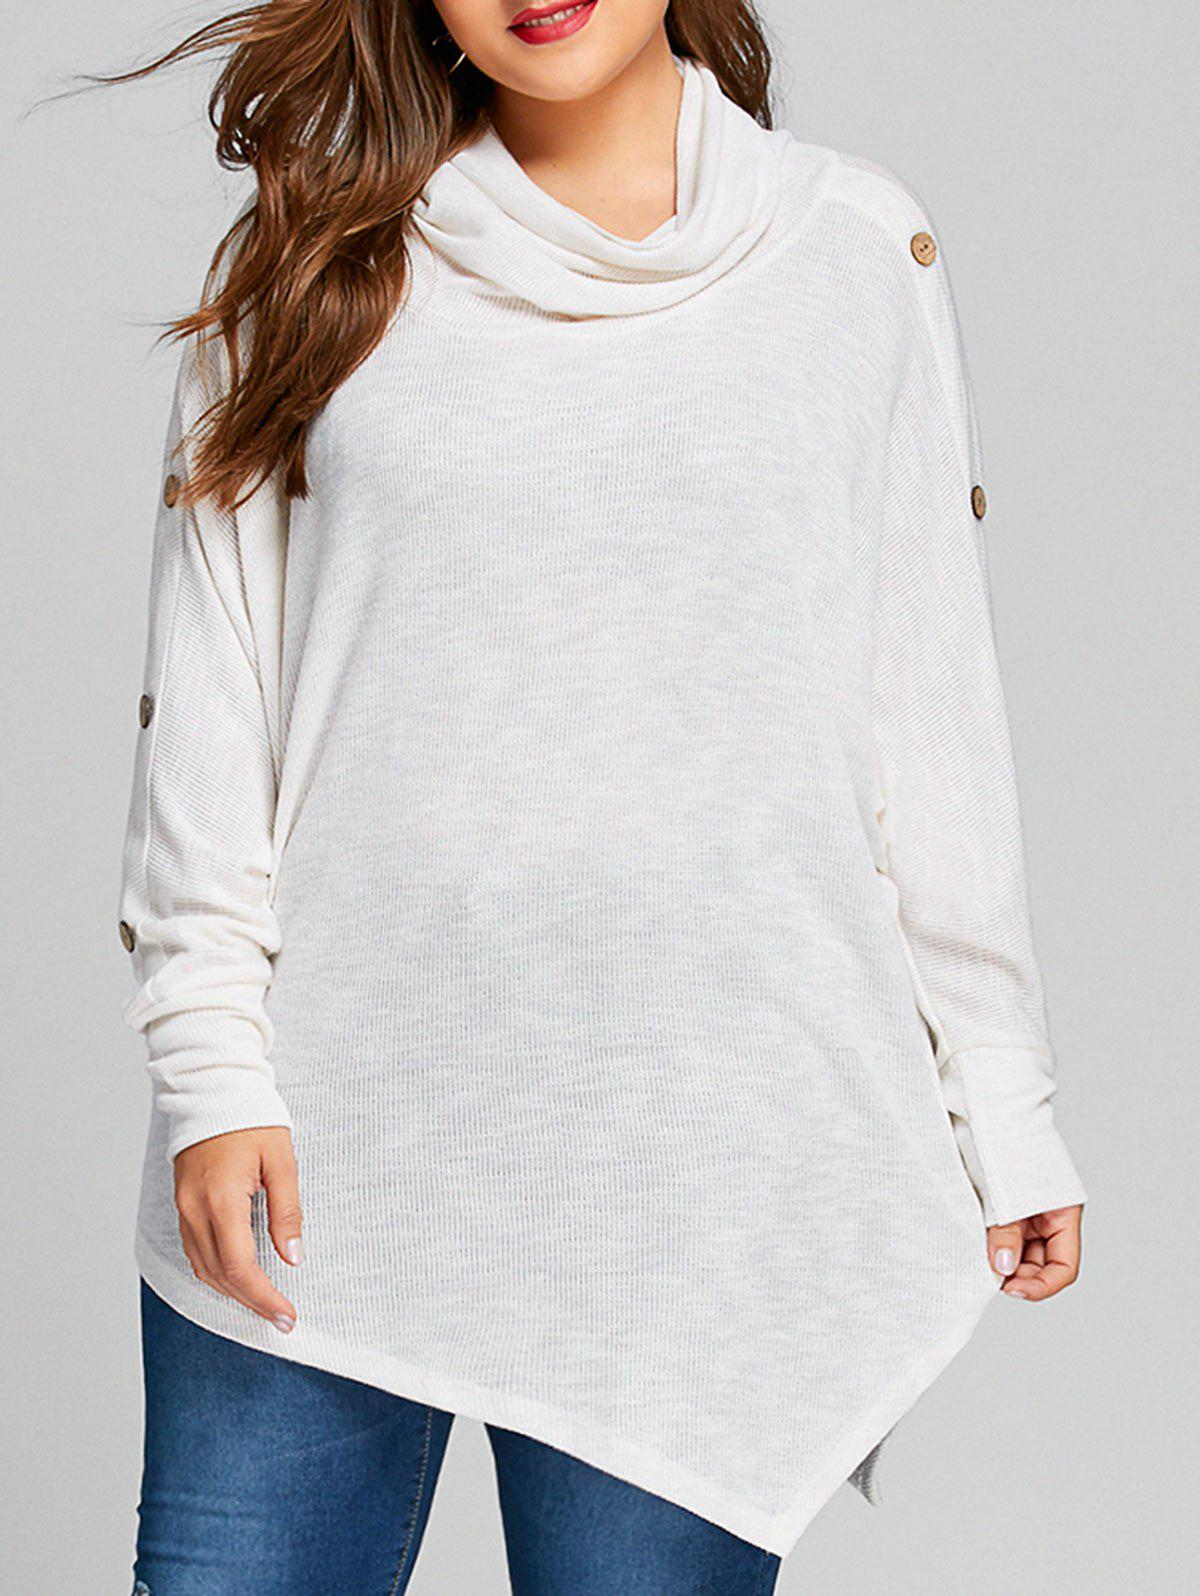 Plus Size Asymmetrical Batwing Sleeve KnitwearWOMEN<br><br>Size: 4XL; Color: WHITE; Type: Pullovers; Material: Acrylic; Sleeve Length: Full; Collar: Cowl Neck; Style: Casual; Season: Fall,Spring,Winter; Pattern Type: Solid; Weight: 0.4550kg; Package Contents: 1 x Knitwear;